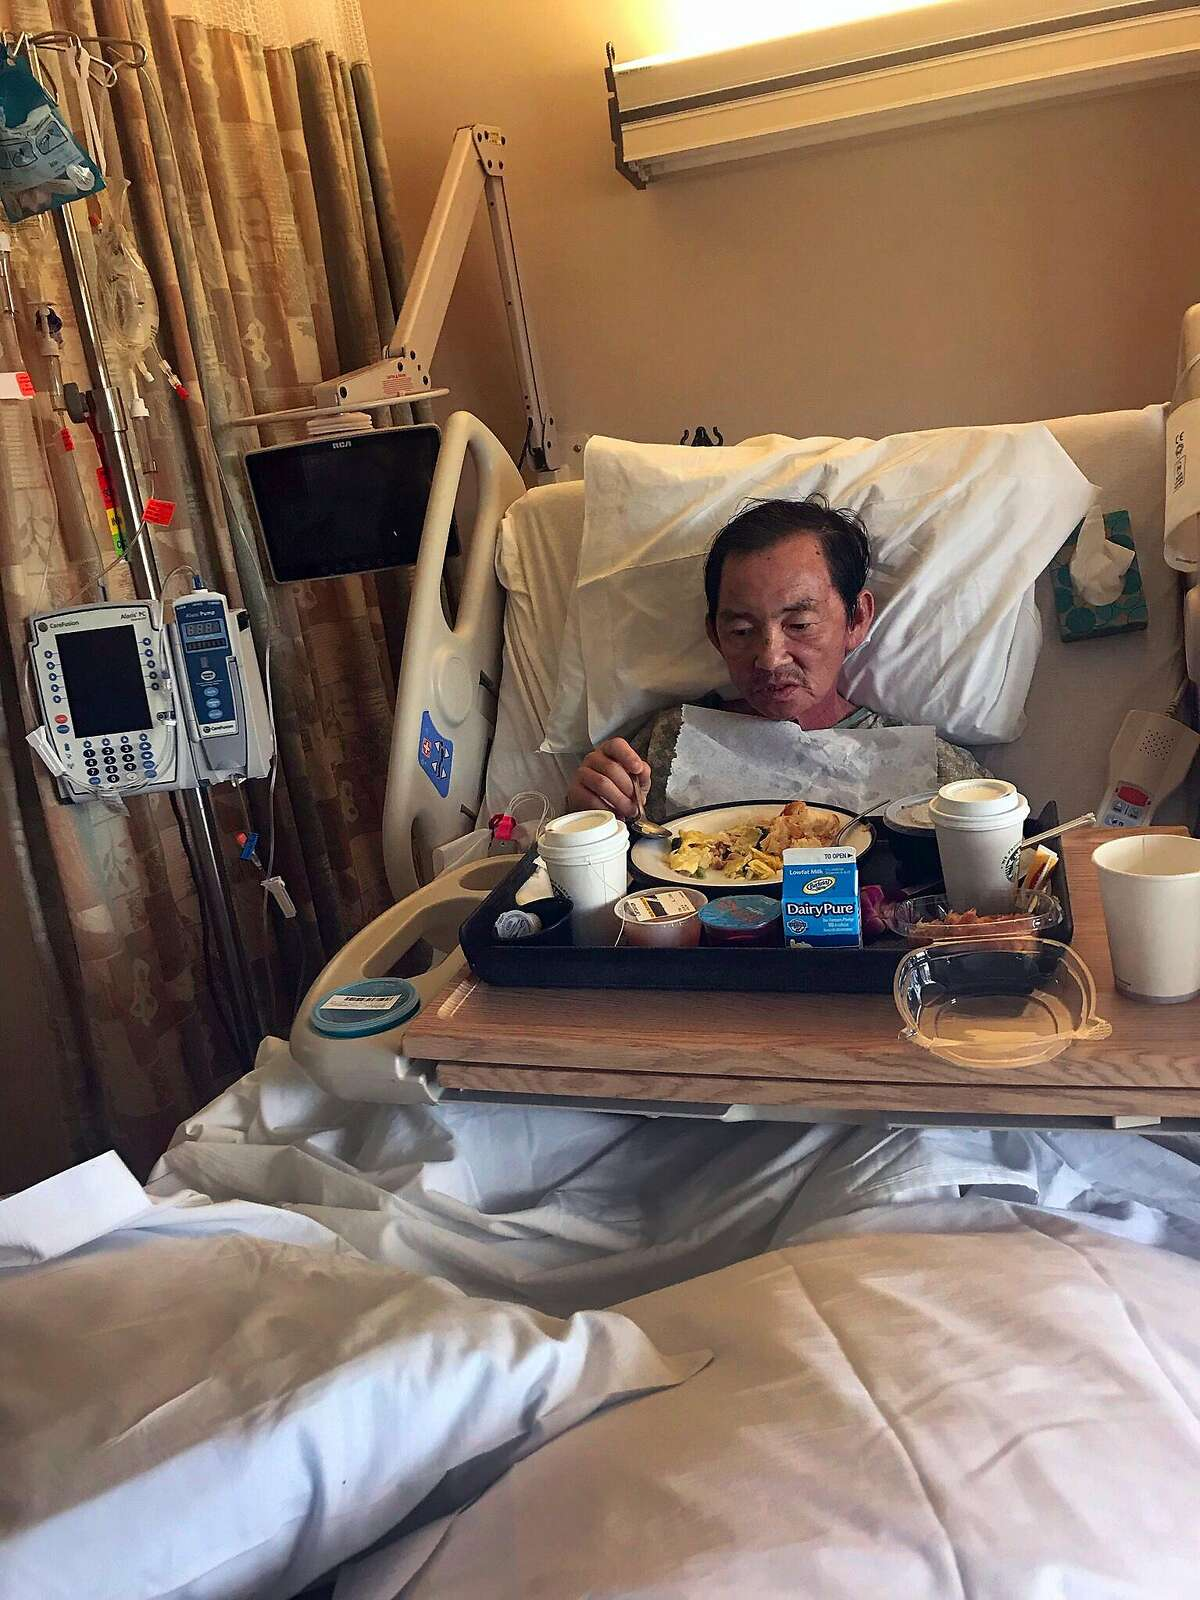 Tu Le of San Jose, is shown hospitalized at Good Samaritan Hospital in San Jose, Calif. on March 30, 2018. Le suffers from a rare form of cancer and a bone marrow transplant could save his life. His two brothers in Vietnam are matches to supply the marrow transplant but they have been denied entry visas to the United States.